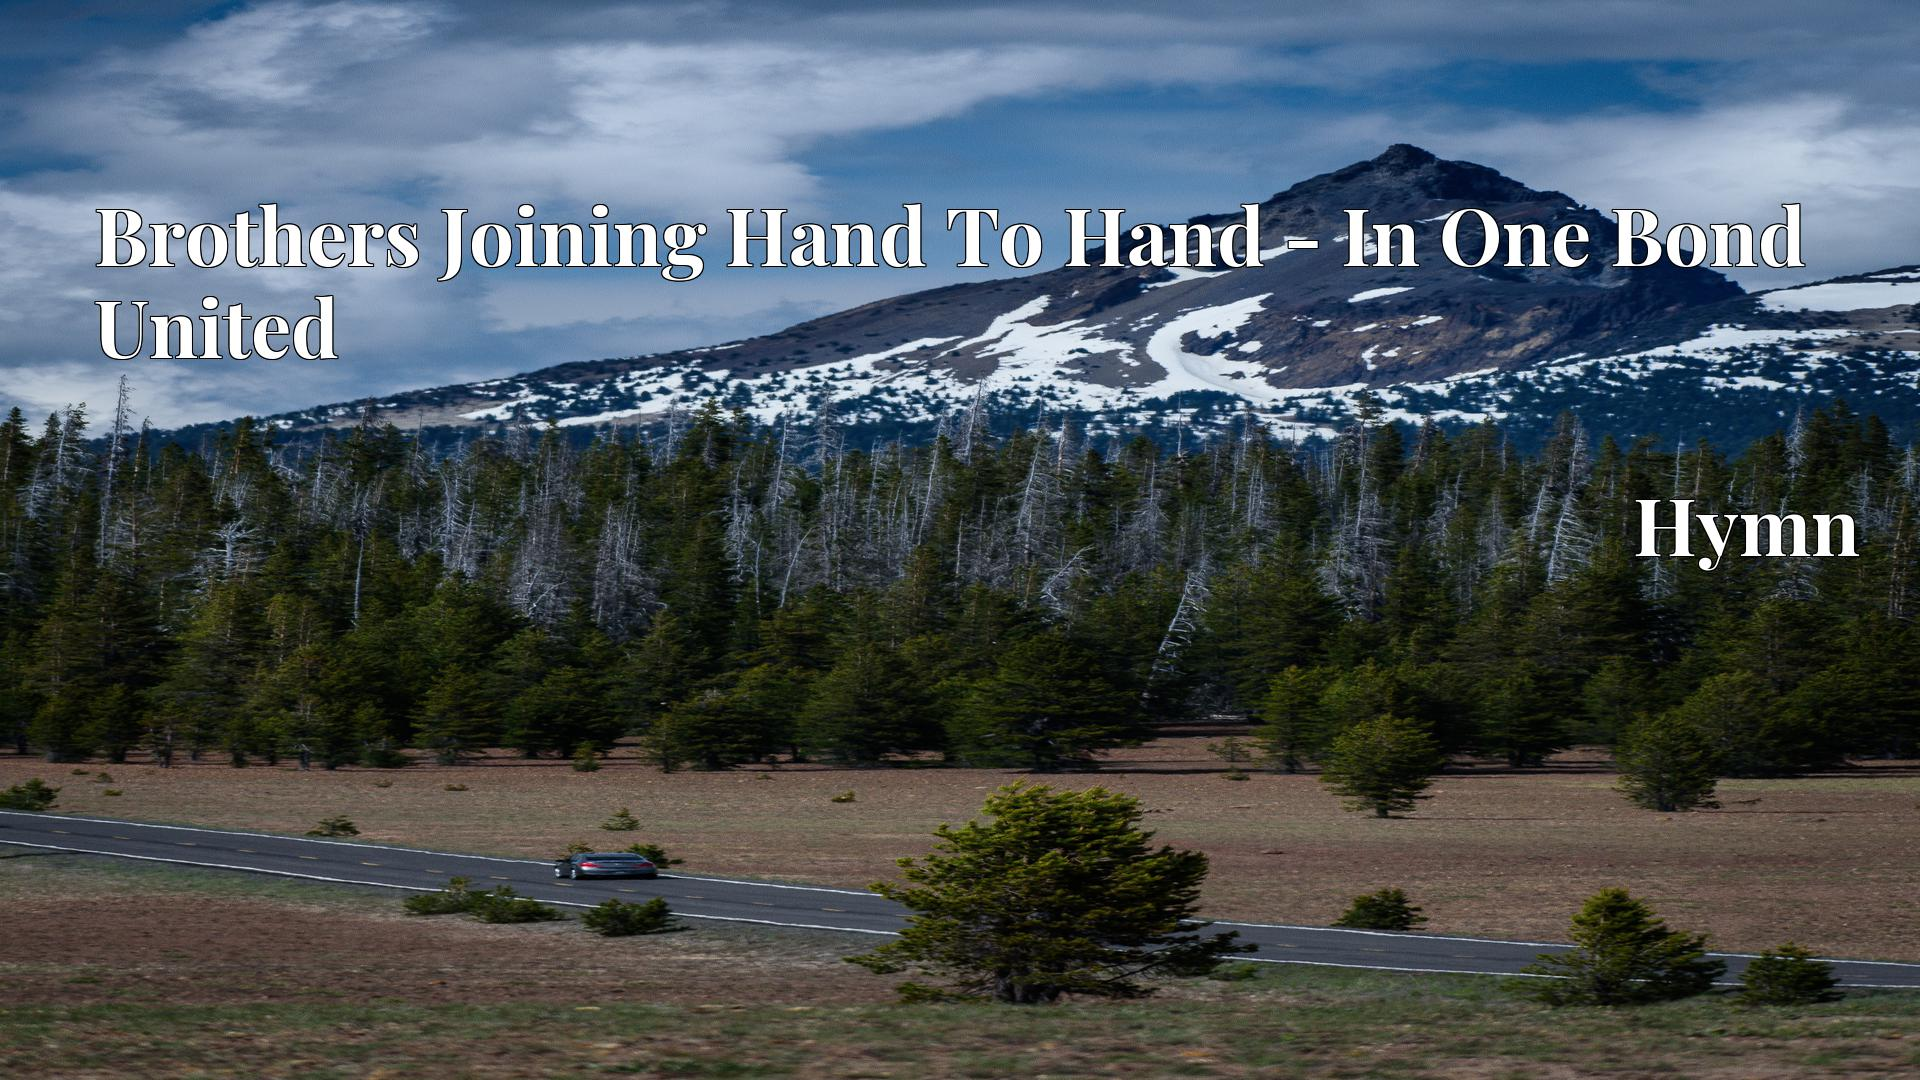 Brothers Joining Hand To Hand - In One Bond United - Hymn